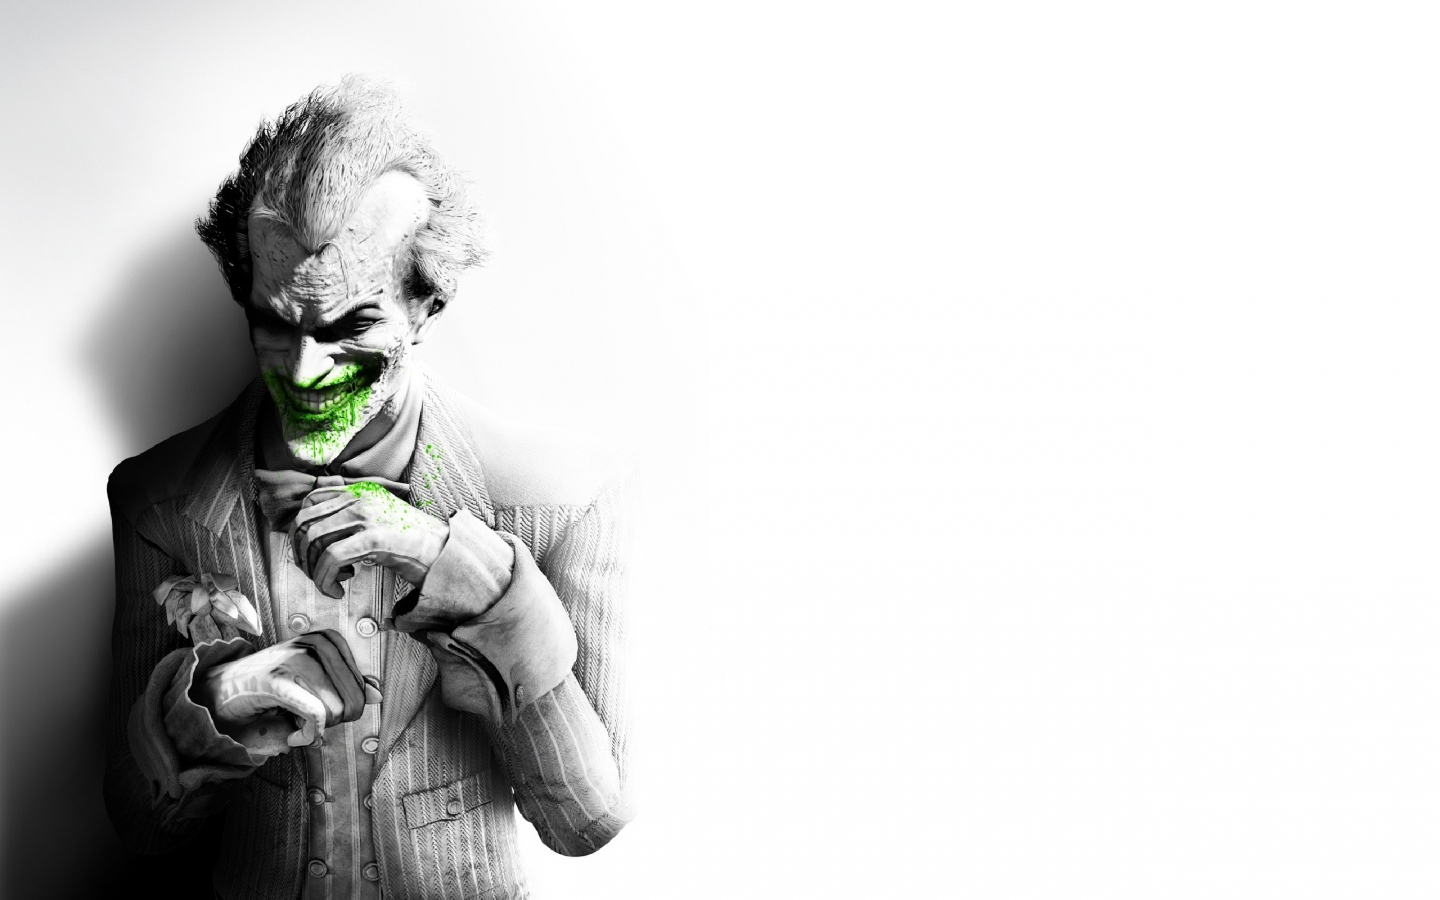 1440x900 Wallpaper batman arkham city joker smile suit flower fan 1440x900